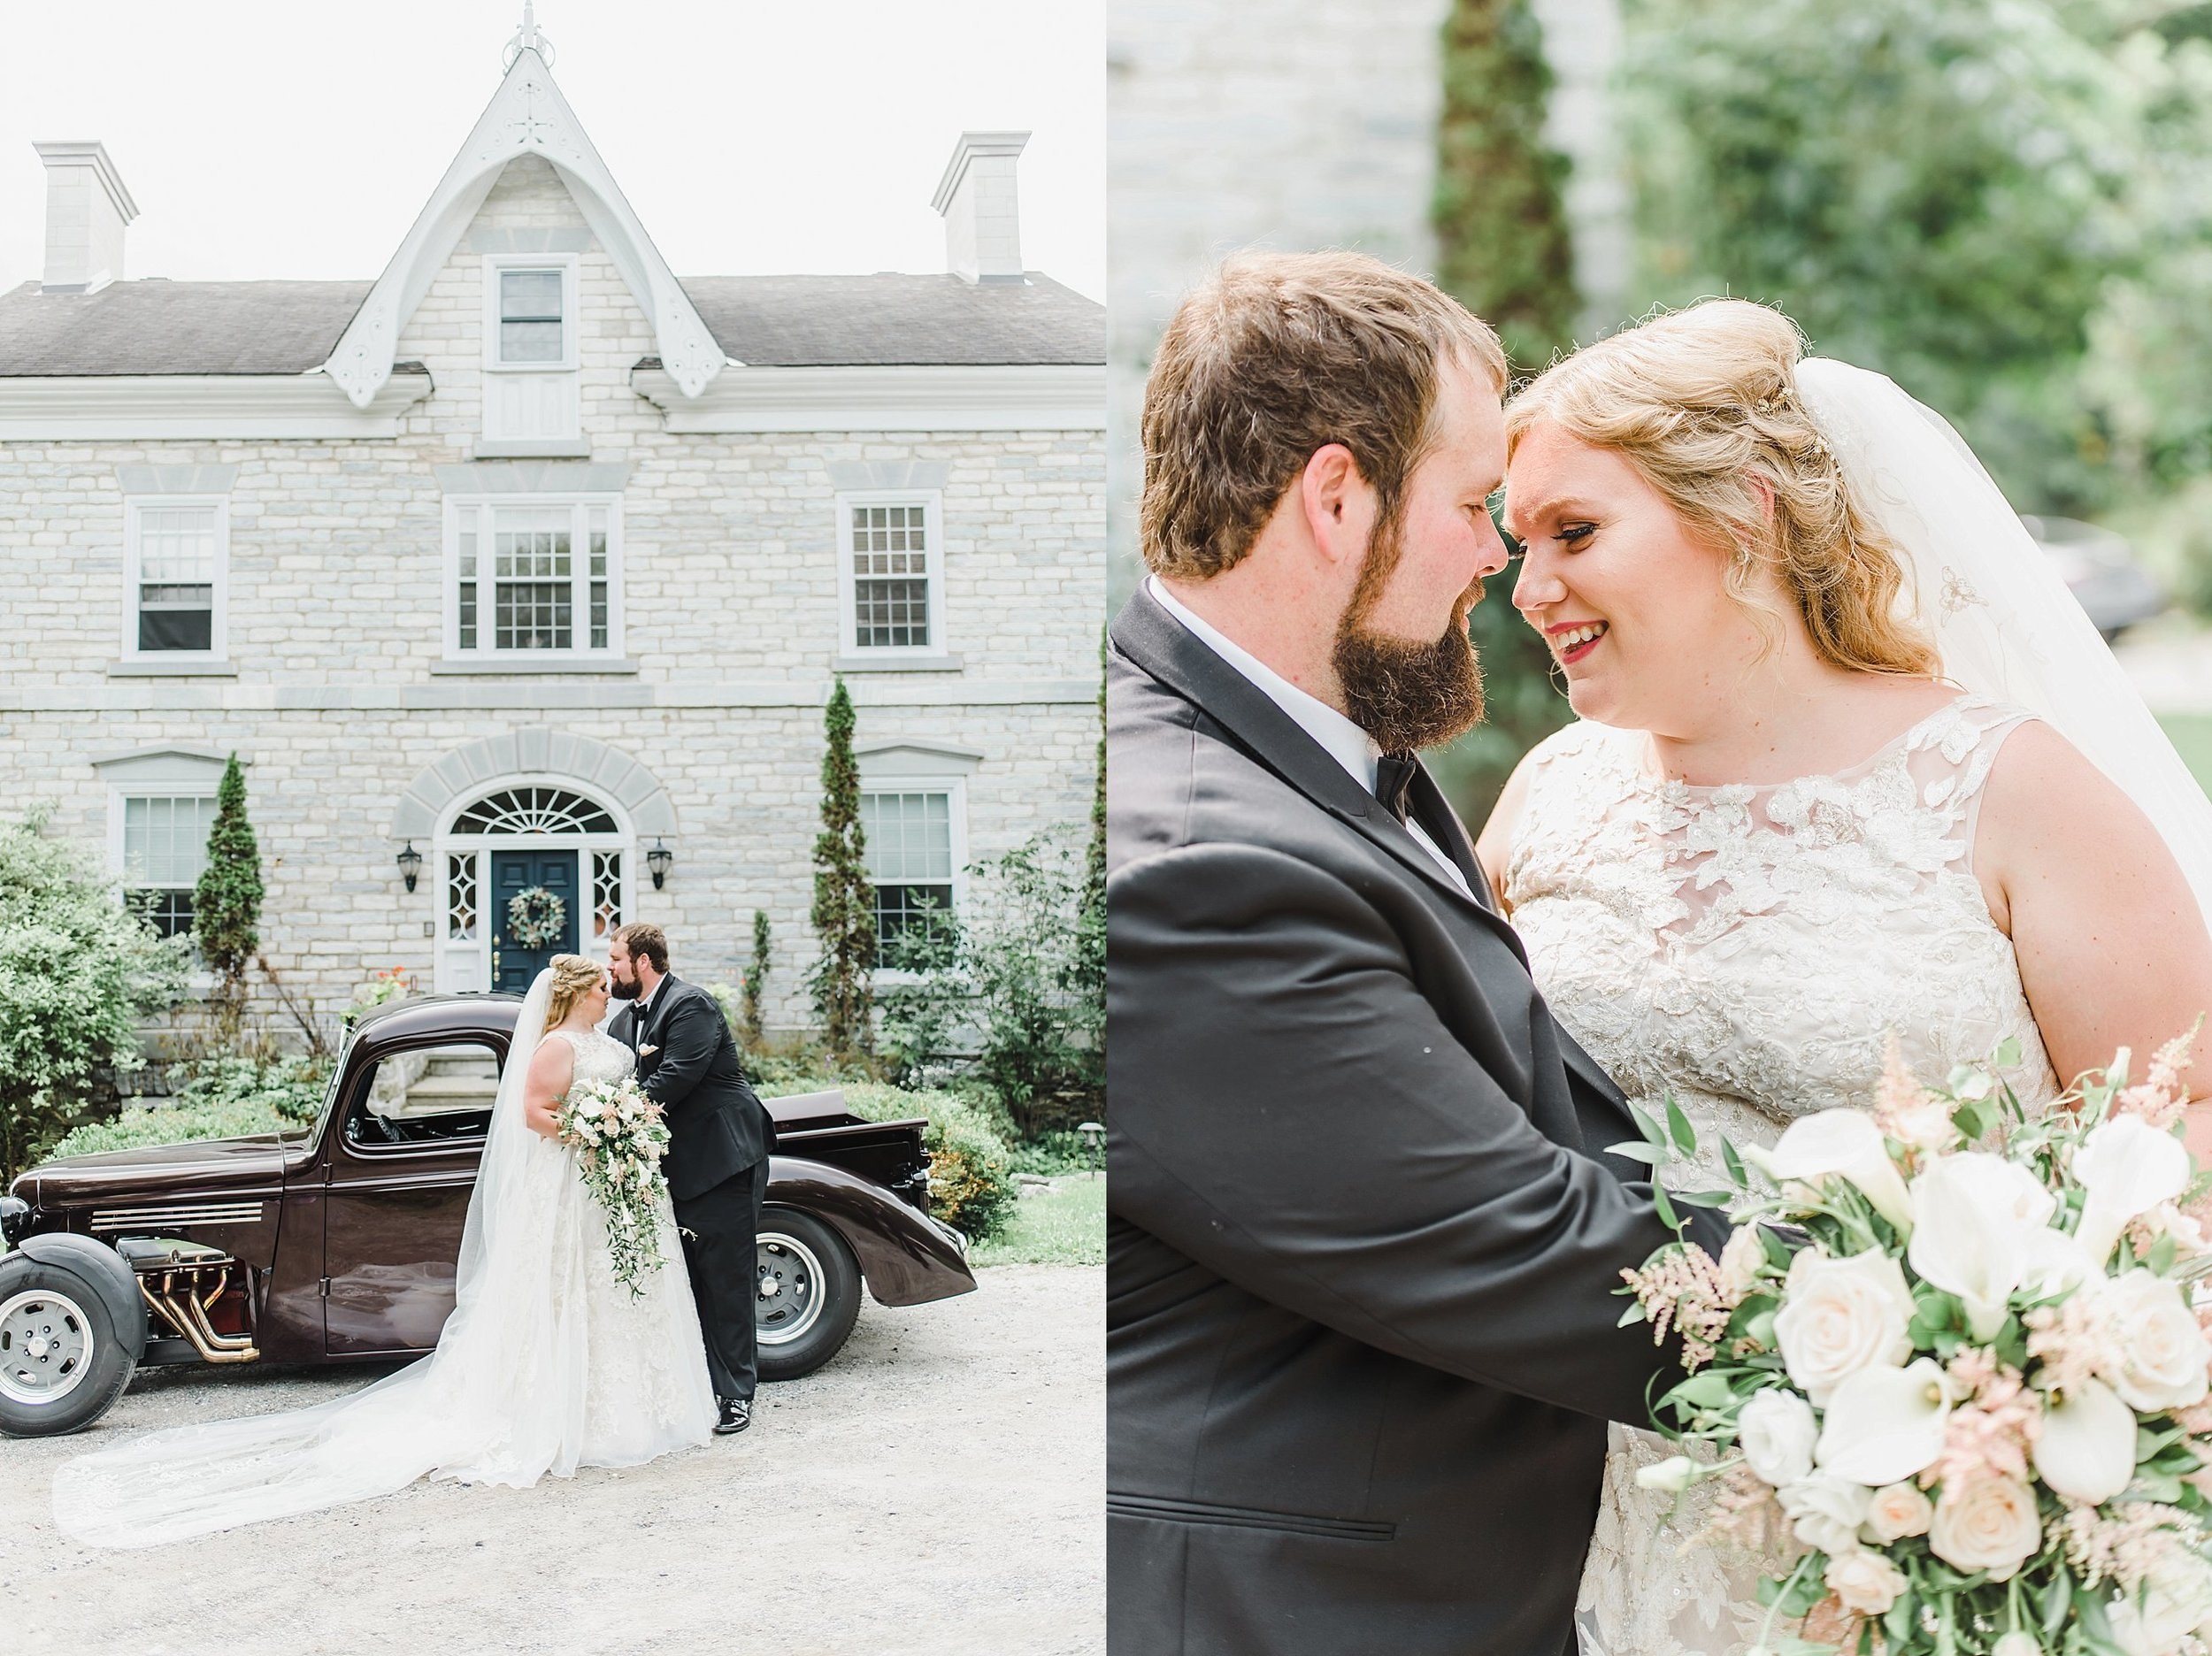 Lanark county, meet Katie and Cole!